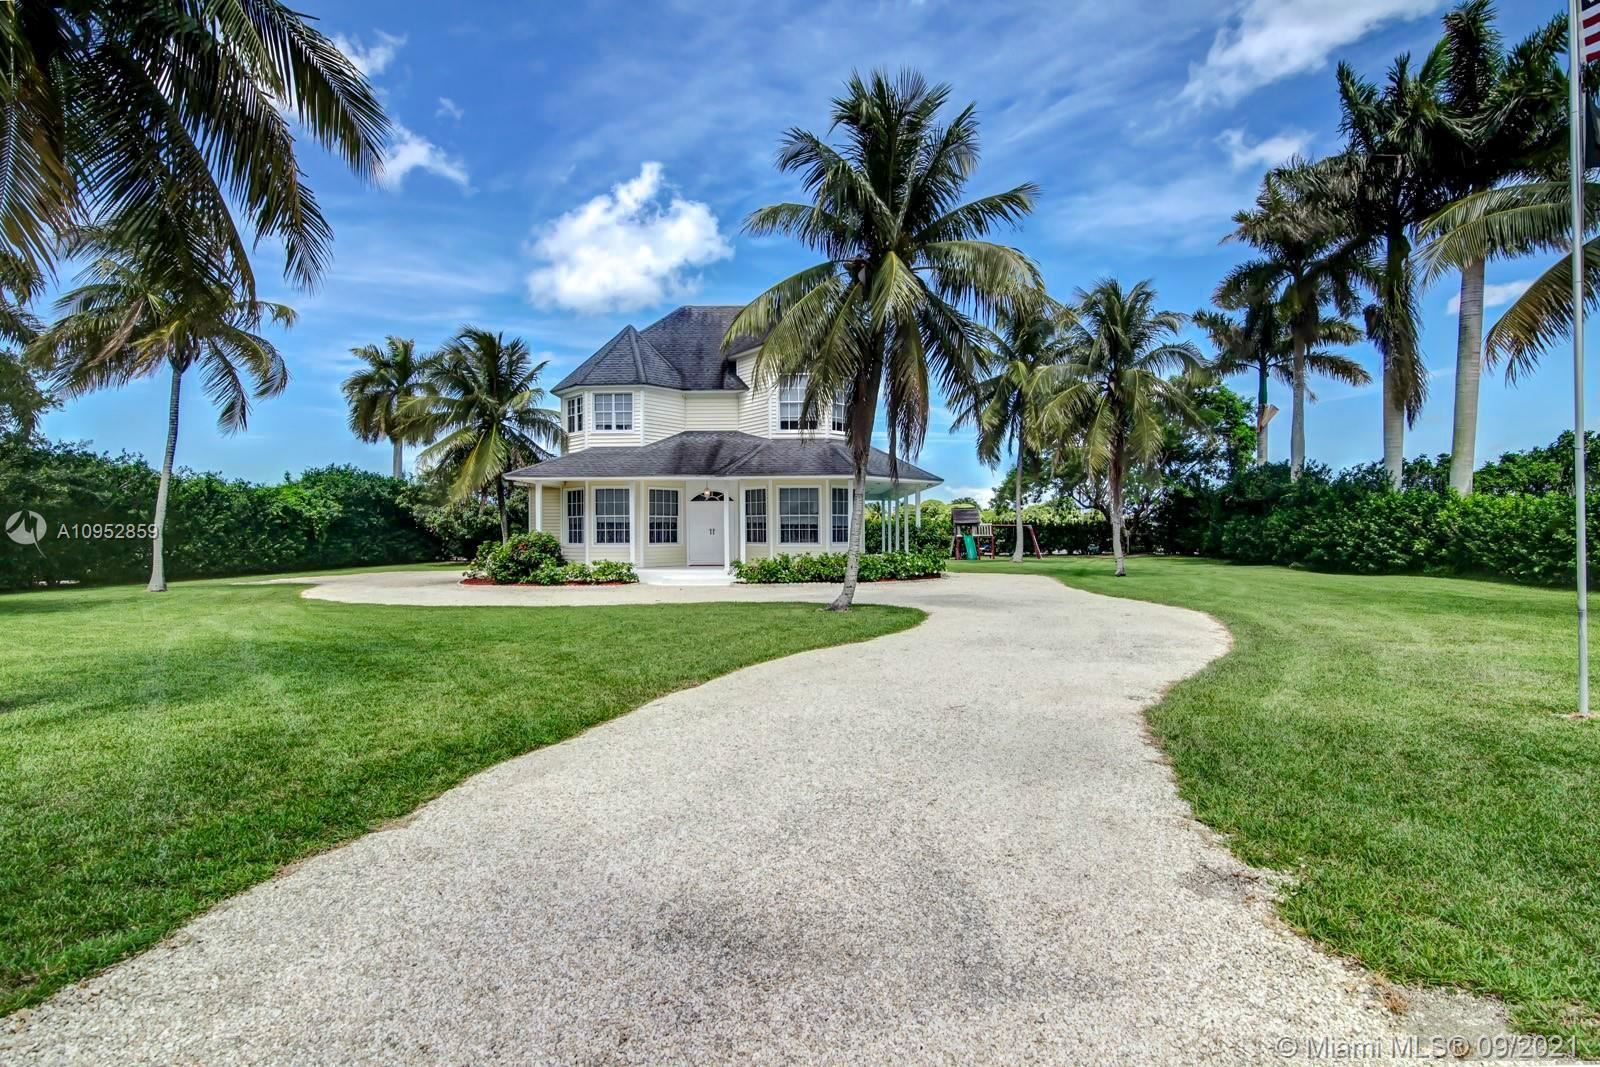 29125 SW 167th Ave, Homestead, FL 33030 - #: A10952859